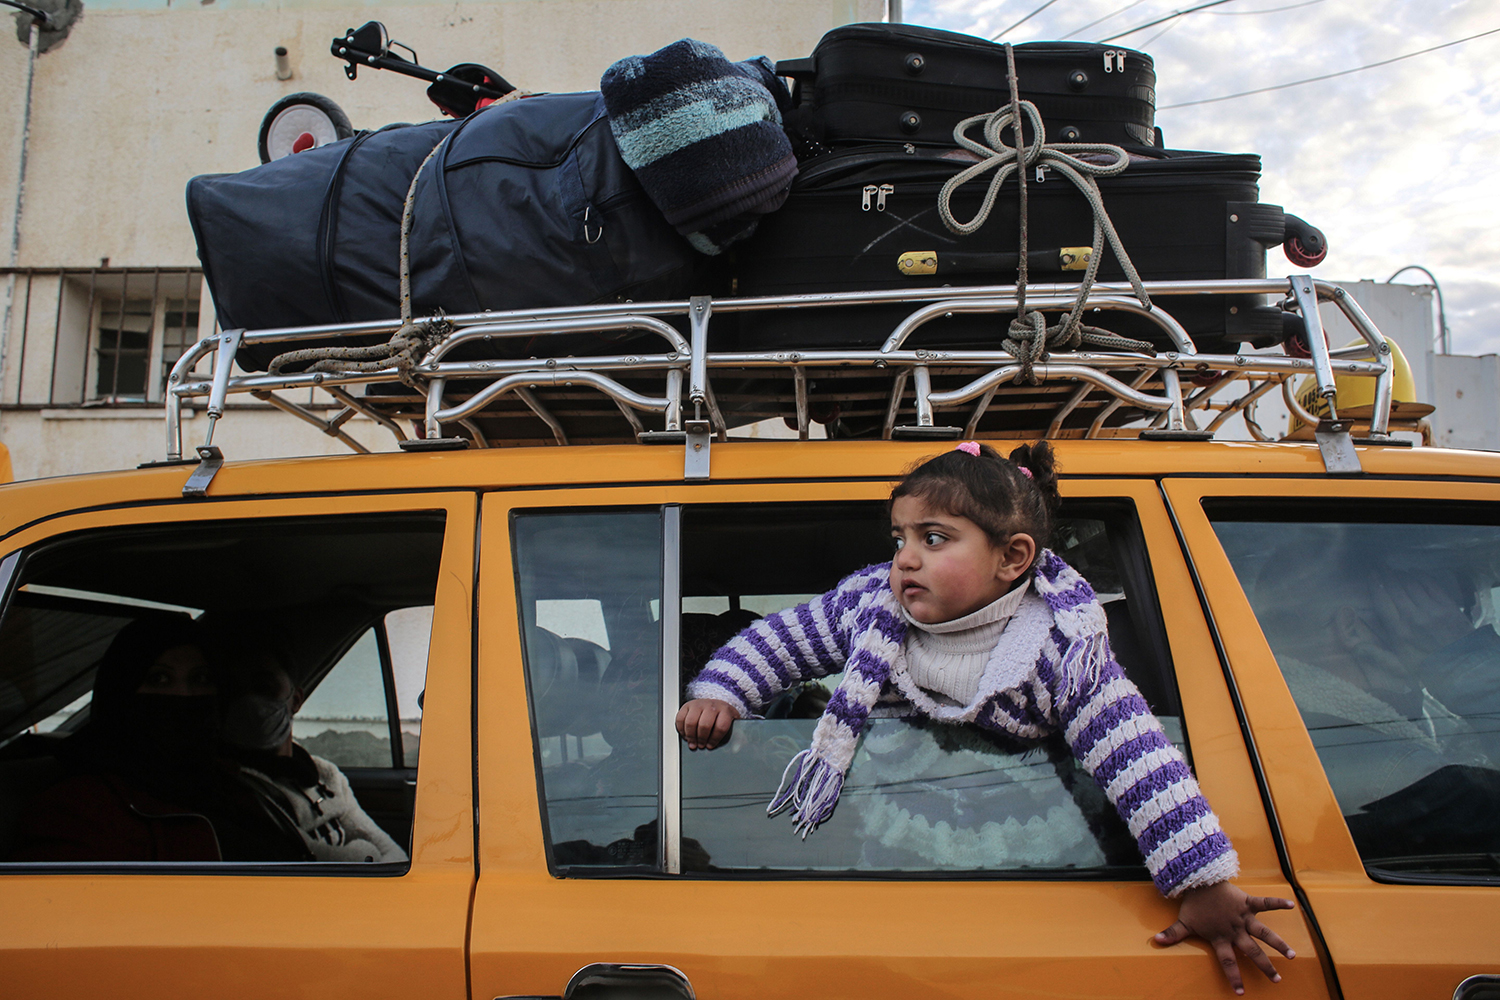 A girl looks out the window of a vehicle loaded with suitcases as it waits at the Rafah border crossing to travel from the Gaza Strip into Egypt on Feb. 9. SAID KHATIB/AFP via Getty Images